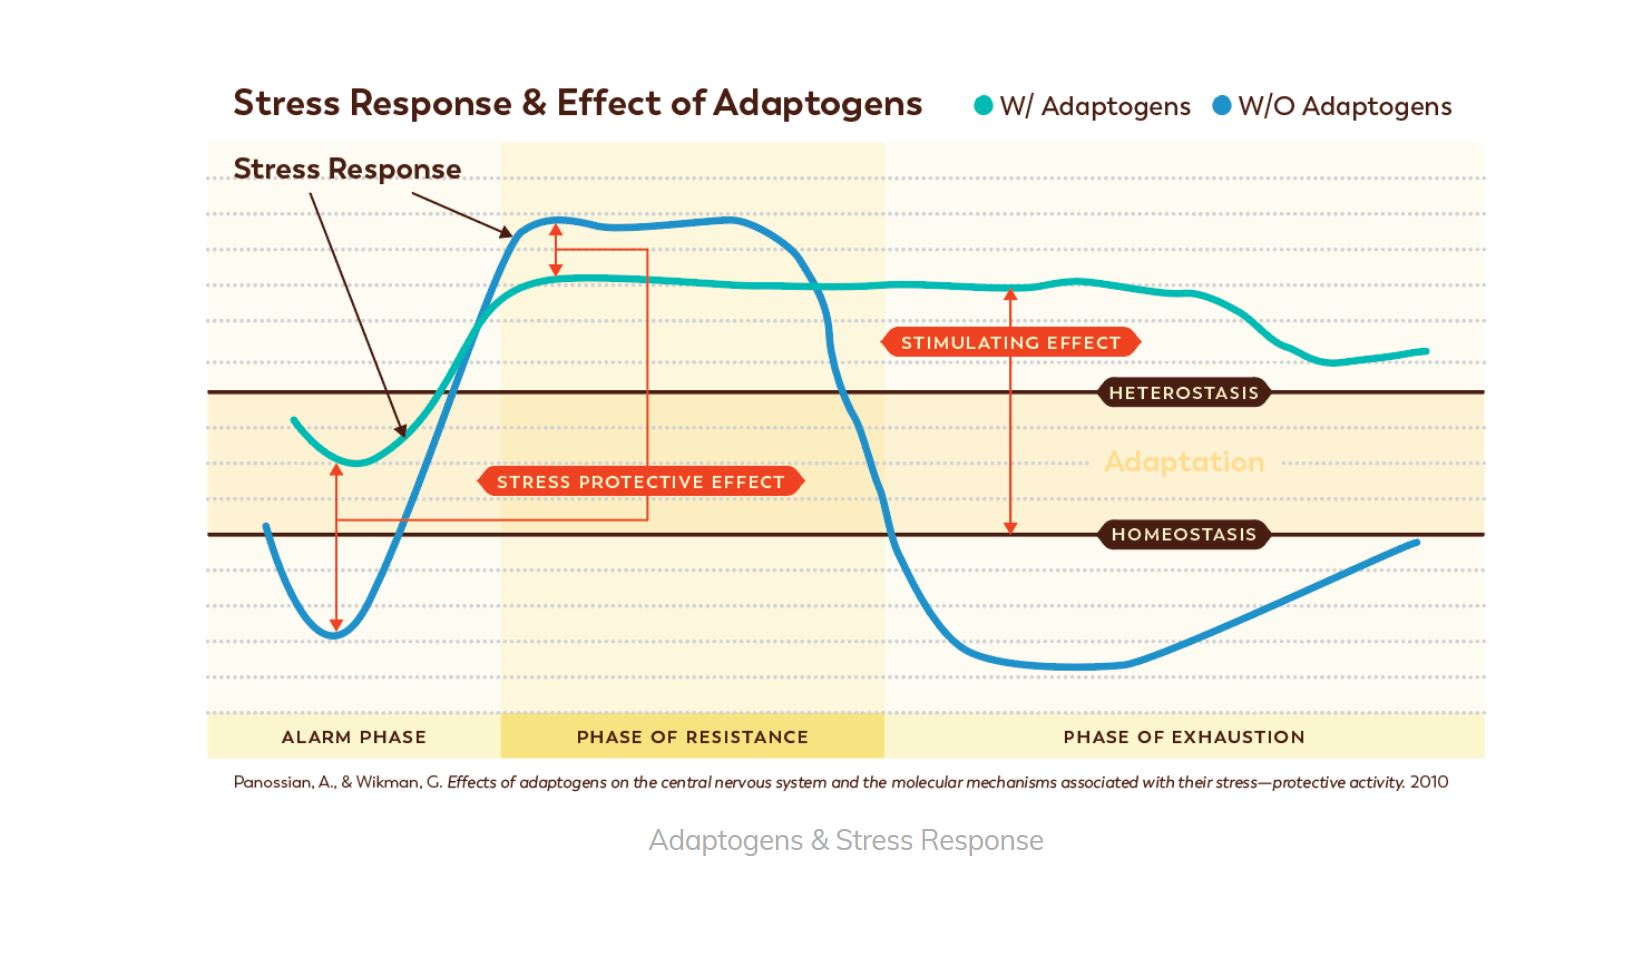 Chart explaining the Stress response and effect of Adaptogens